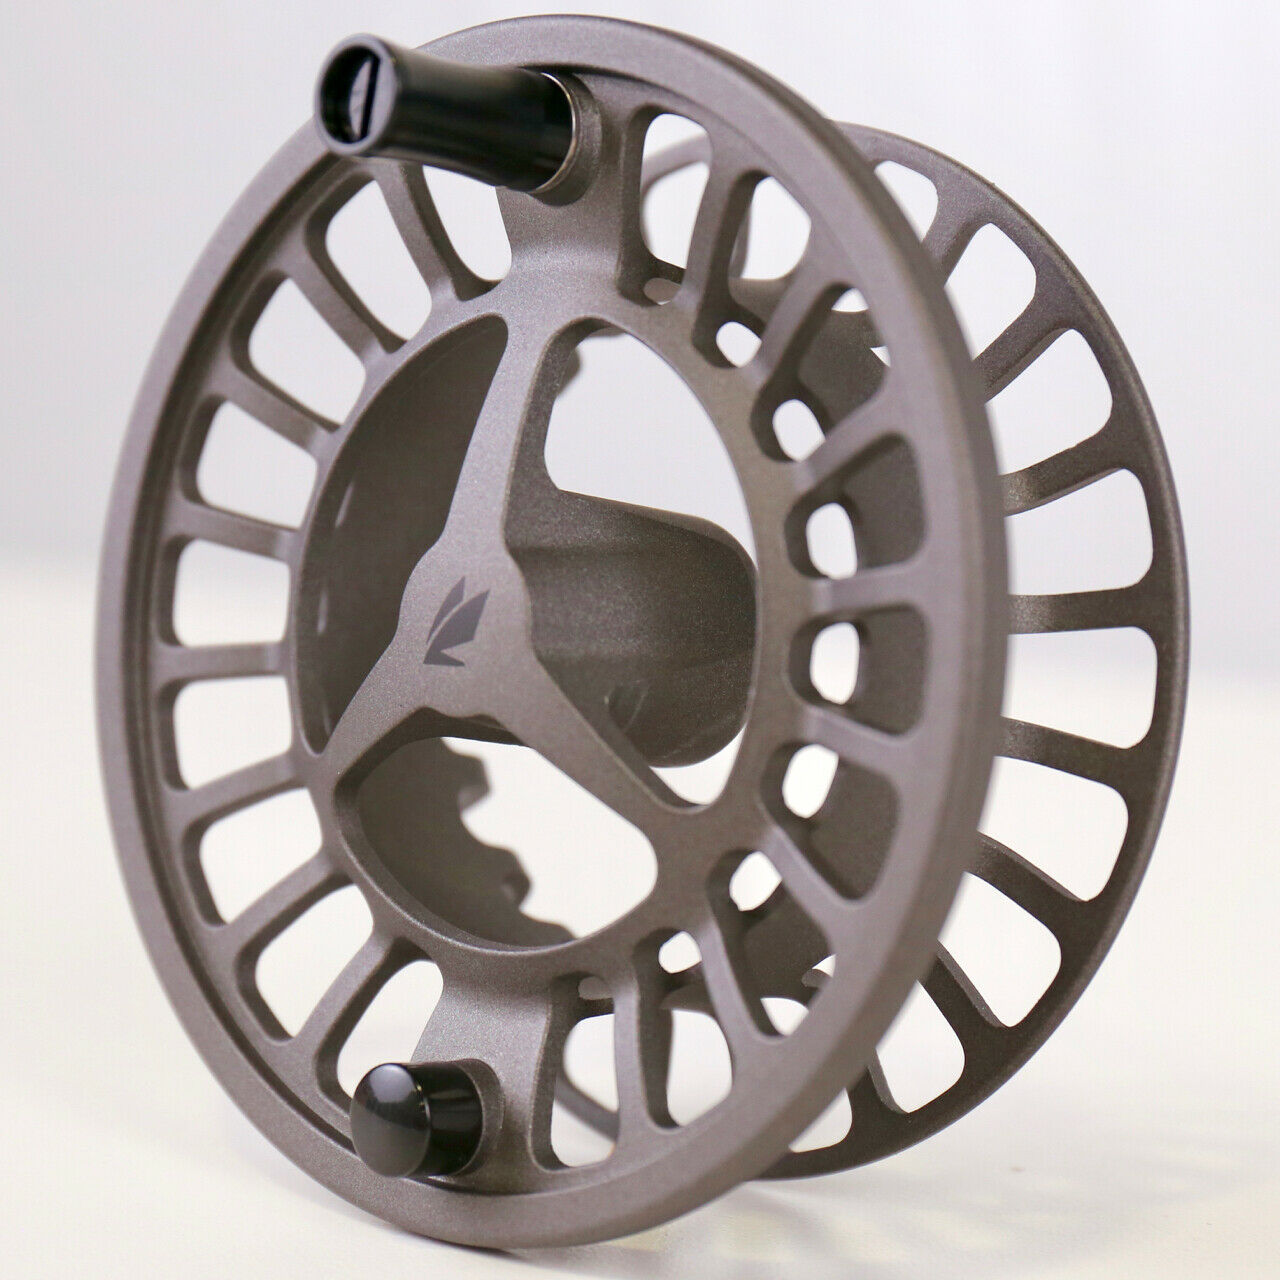 Sage Spectrum C Spare Spool Grey Size 5 6 FREE FAST SHIPPING